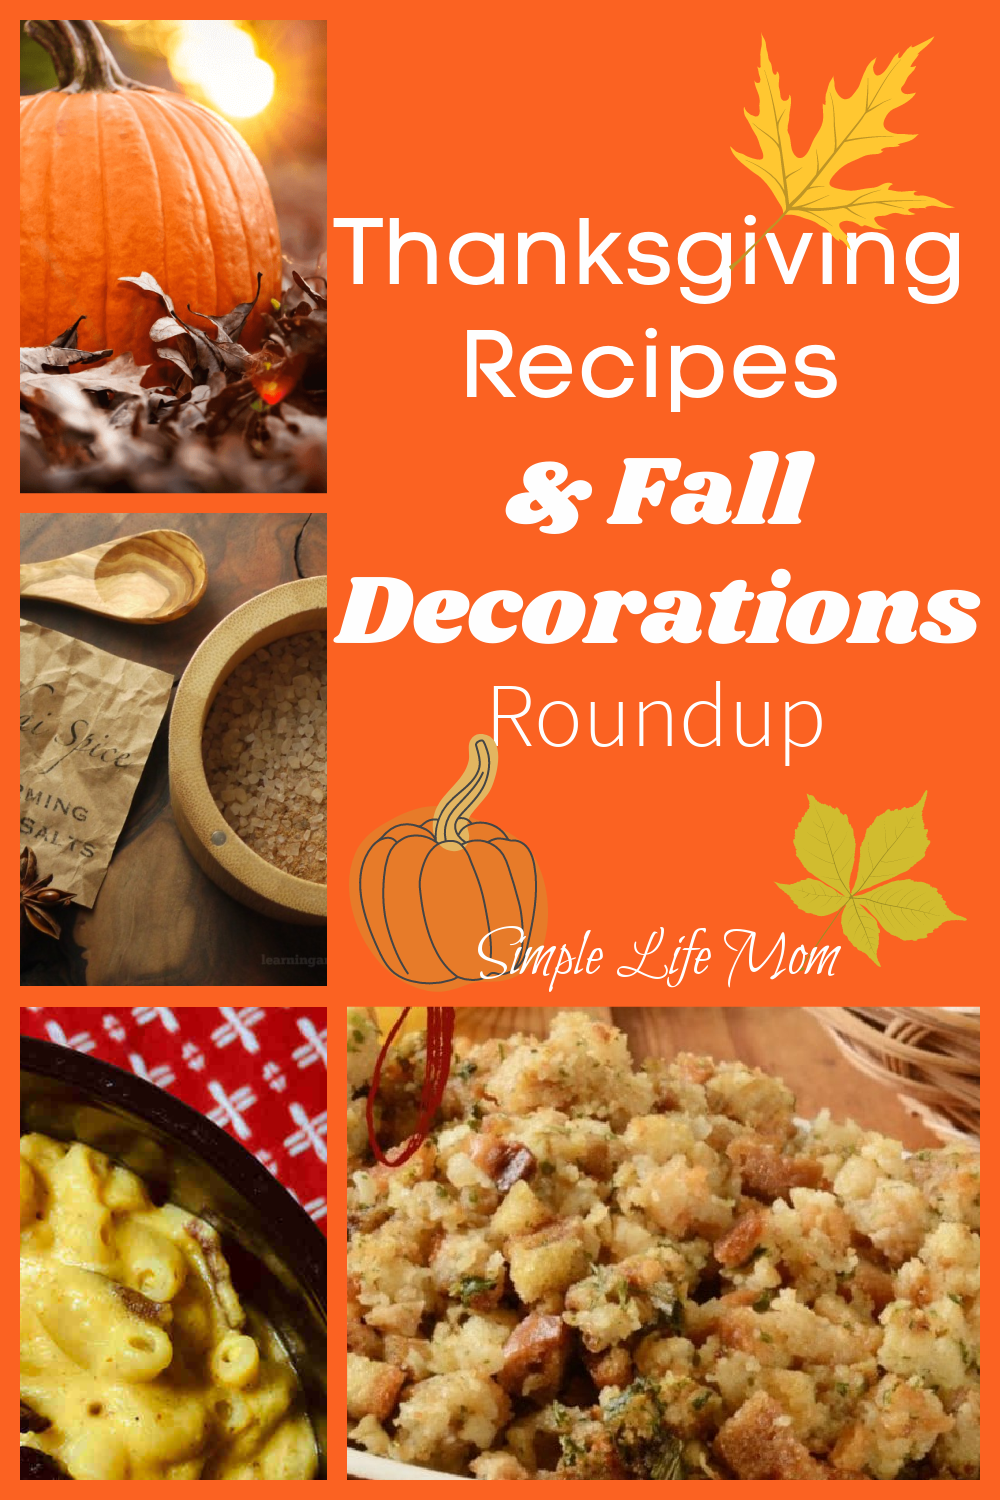 Thanksgiving Recipe & Fall Decorations Roundup